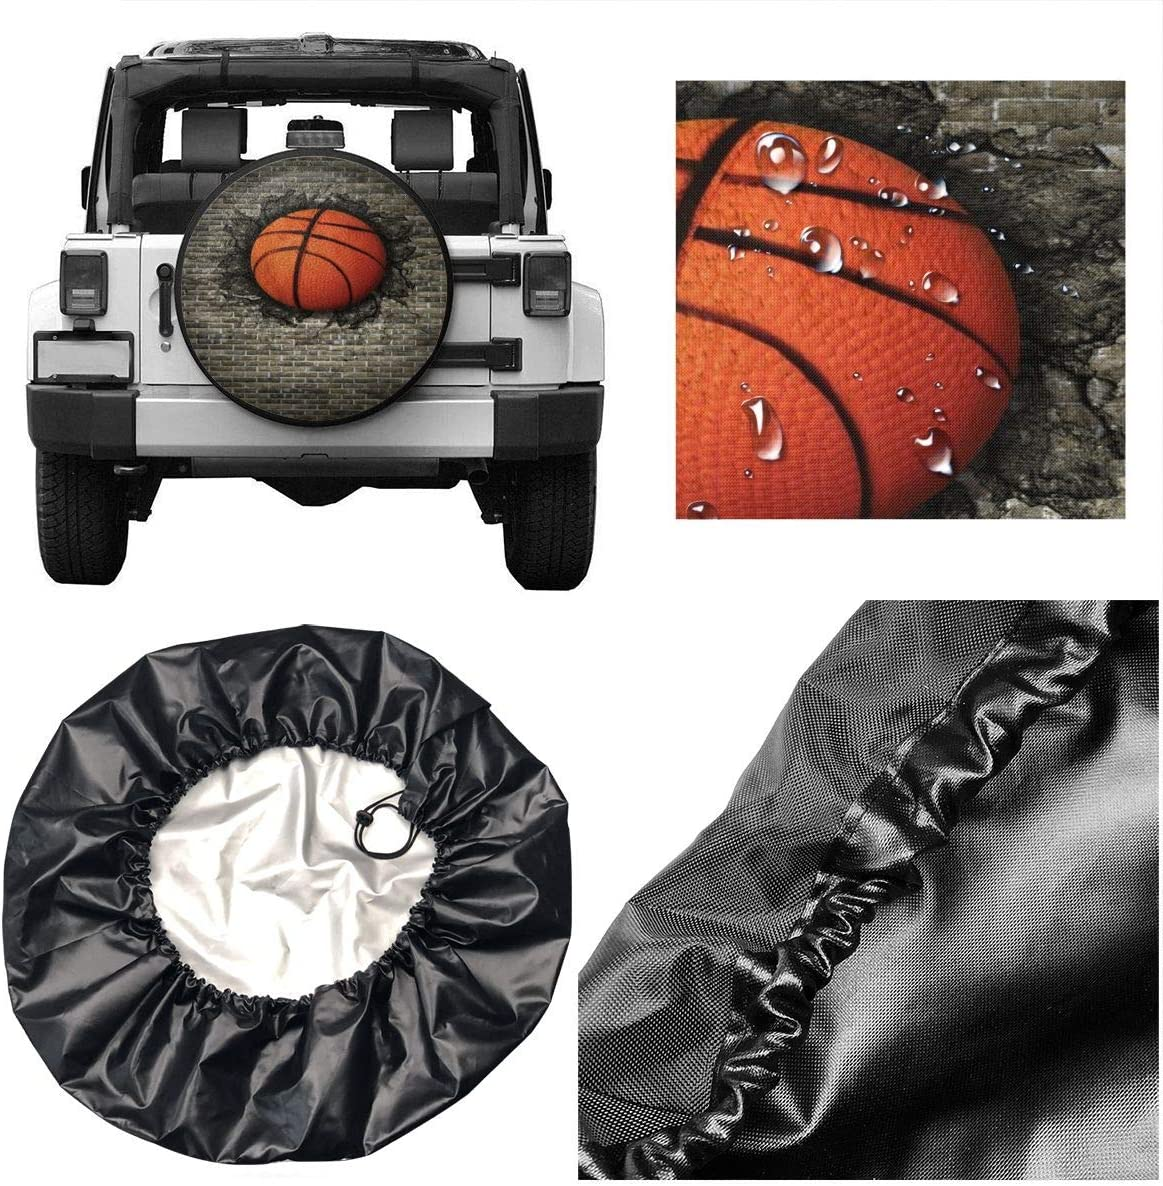 Trailer SUV Truck and Many Vehicle 17 Inch for Diameter 31-33 Delerain HorseSpare Tire Covers Waterproof Dust-Proof Spare Wheel Cover Universal Fit for Jeep RV